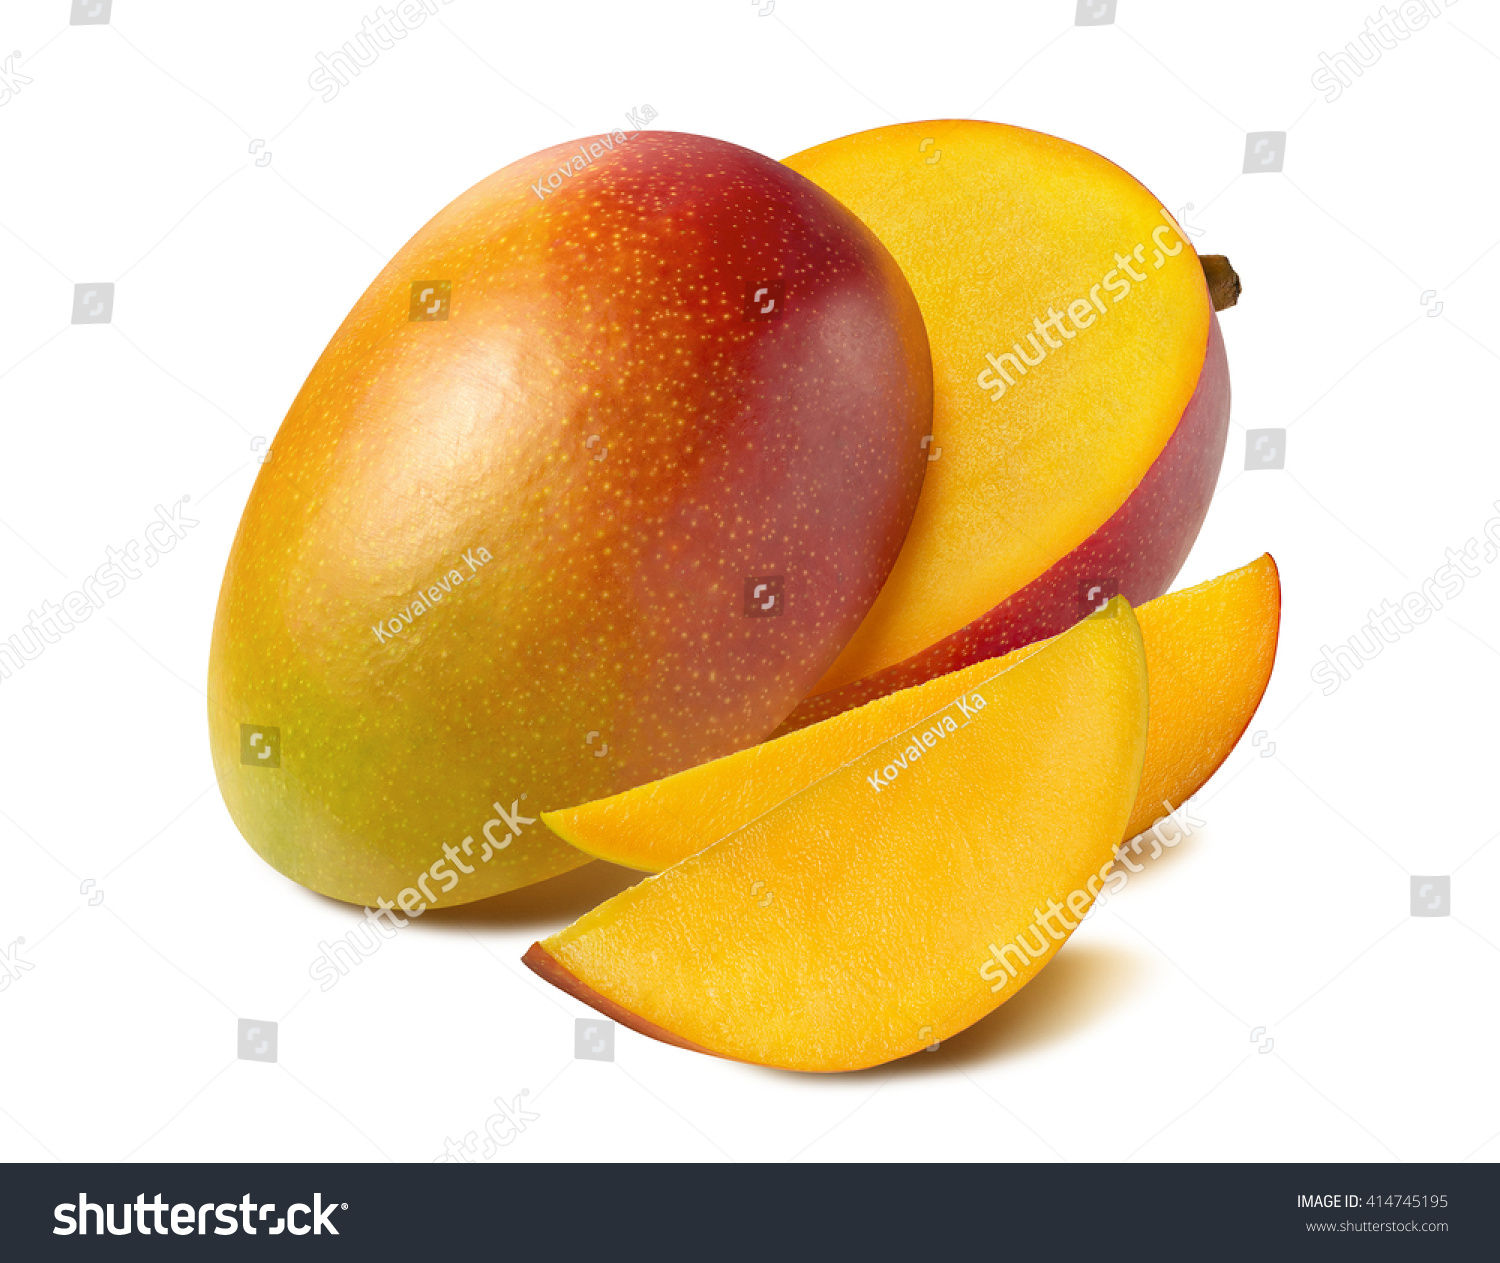 Mango beautiful cut slice half isolated stock photo 414745195 mango beautiful cut slice half isolated on white background as package design element ccuart Choice Image